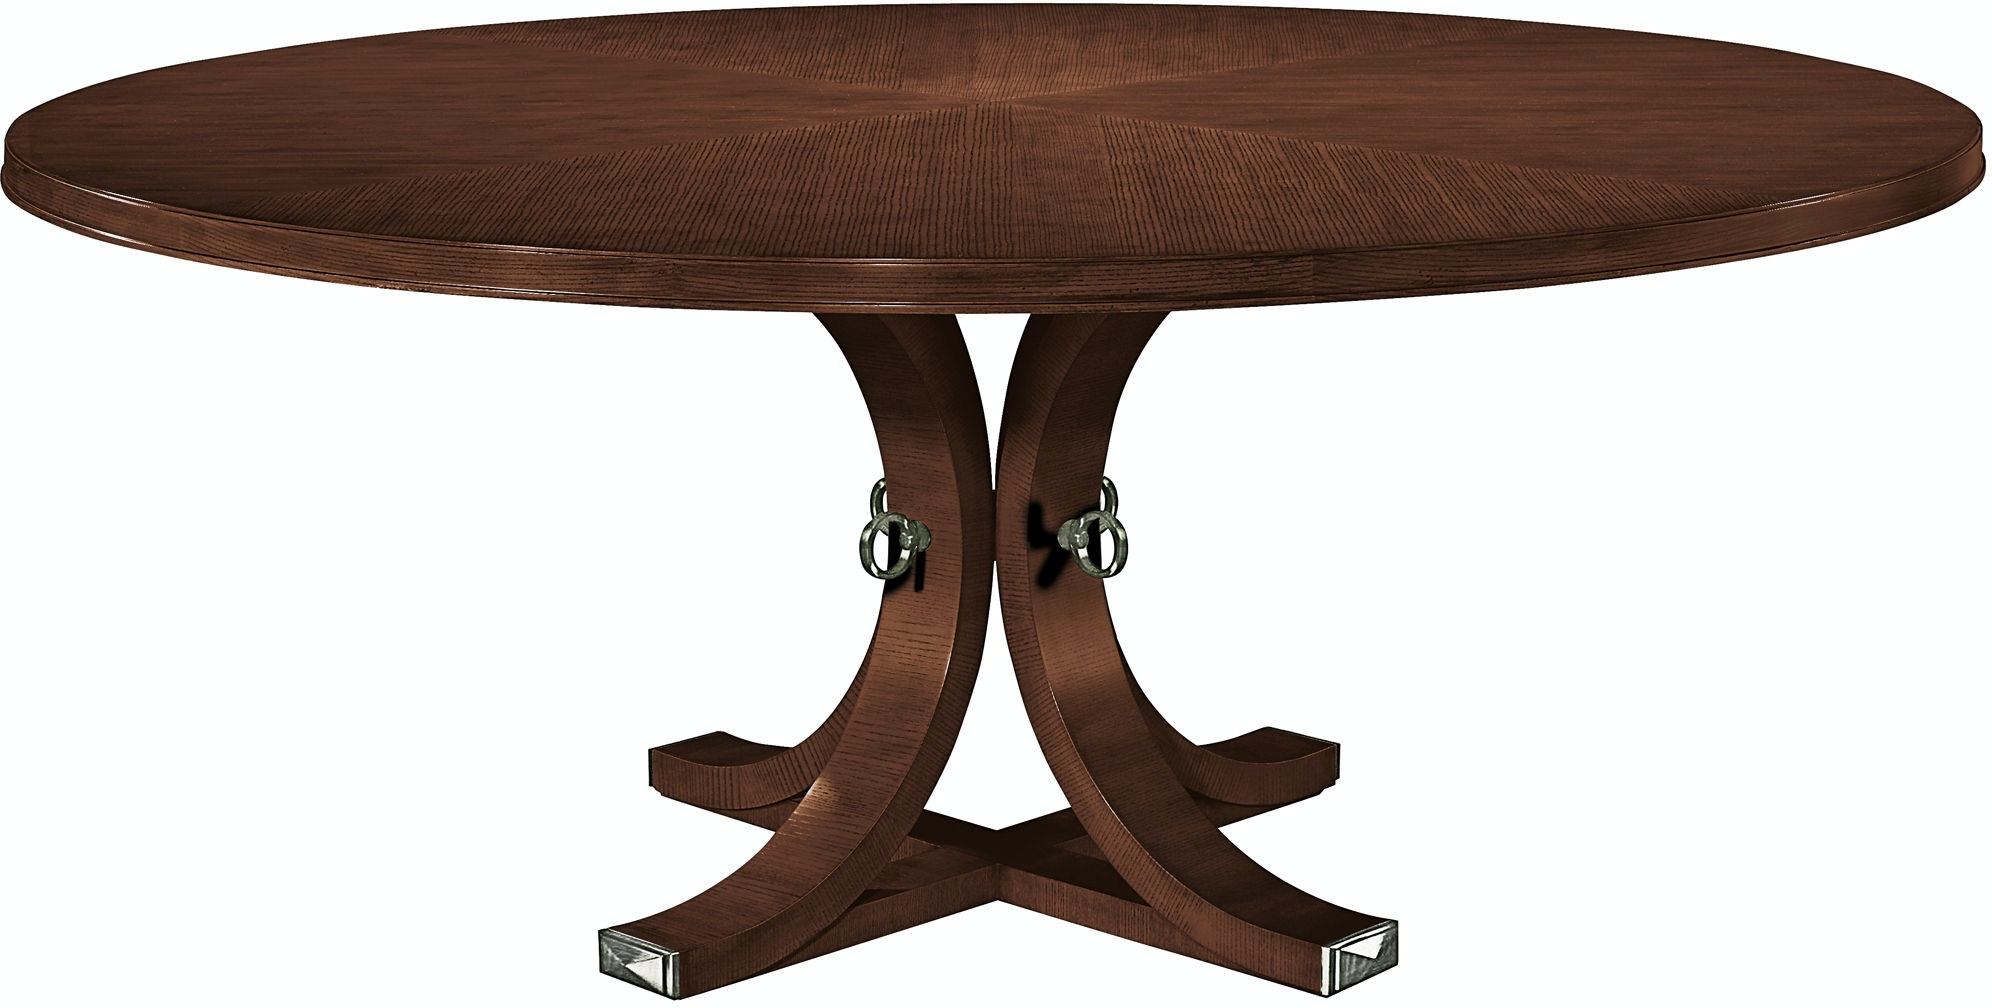 Outstanding Hickory Chair Dining Room Artisan Round Dining Table Top Caraccident5 Cool Chair Designs And Ideas Caraccident5Info